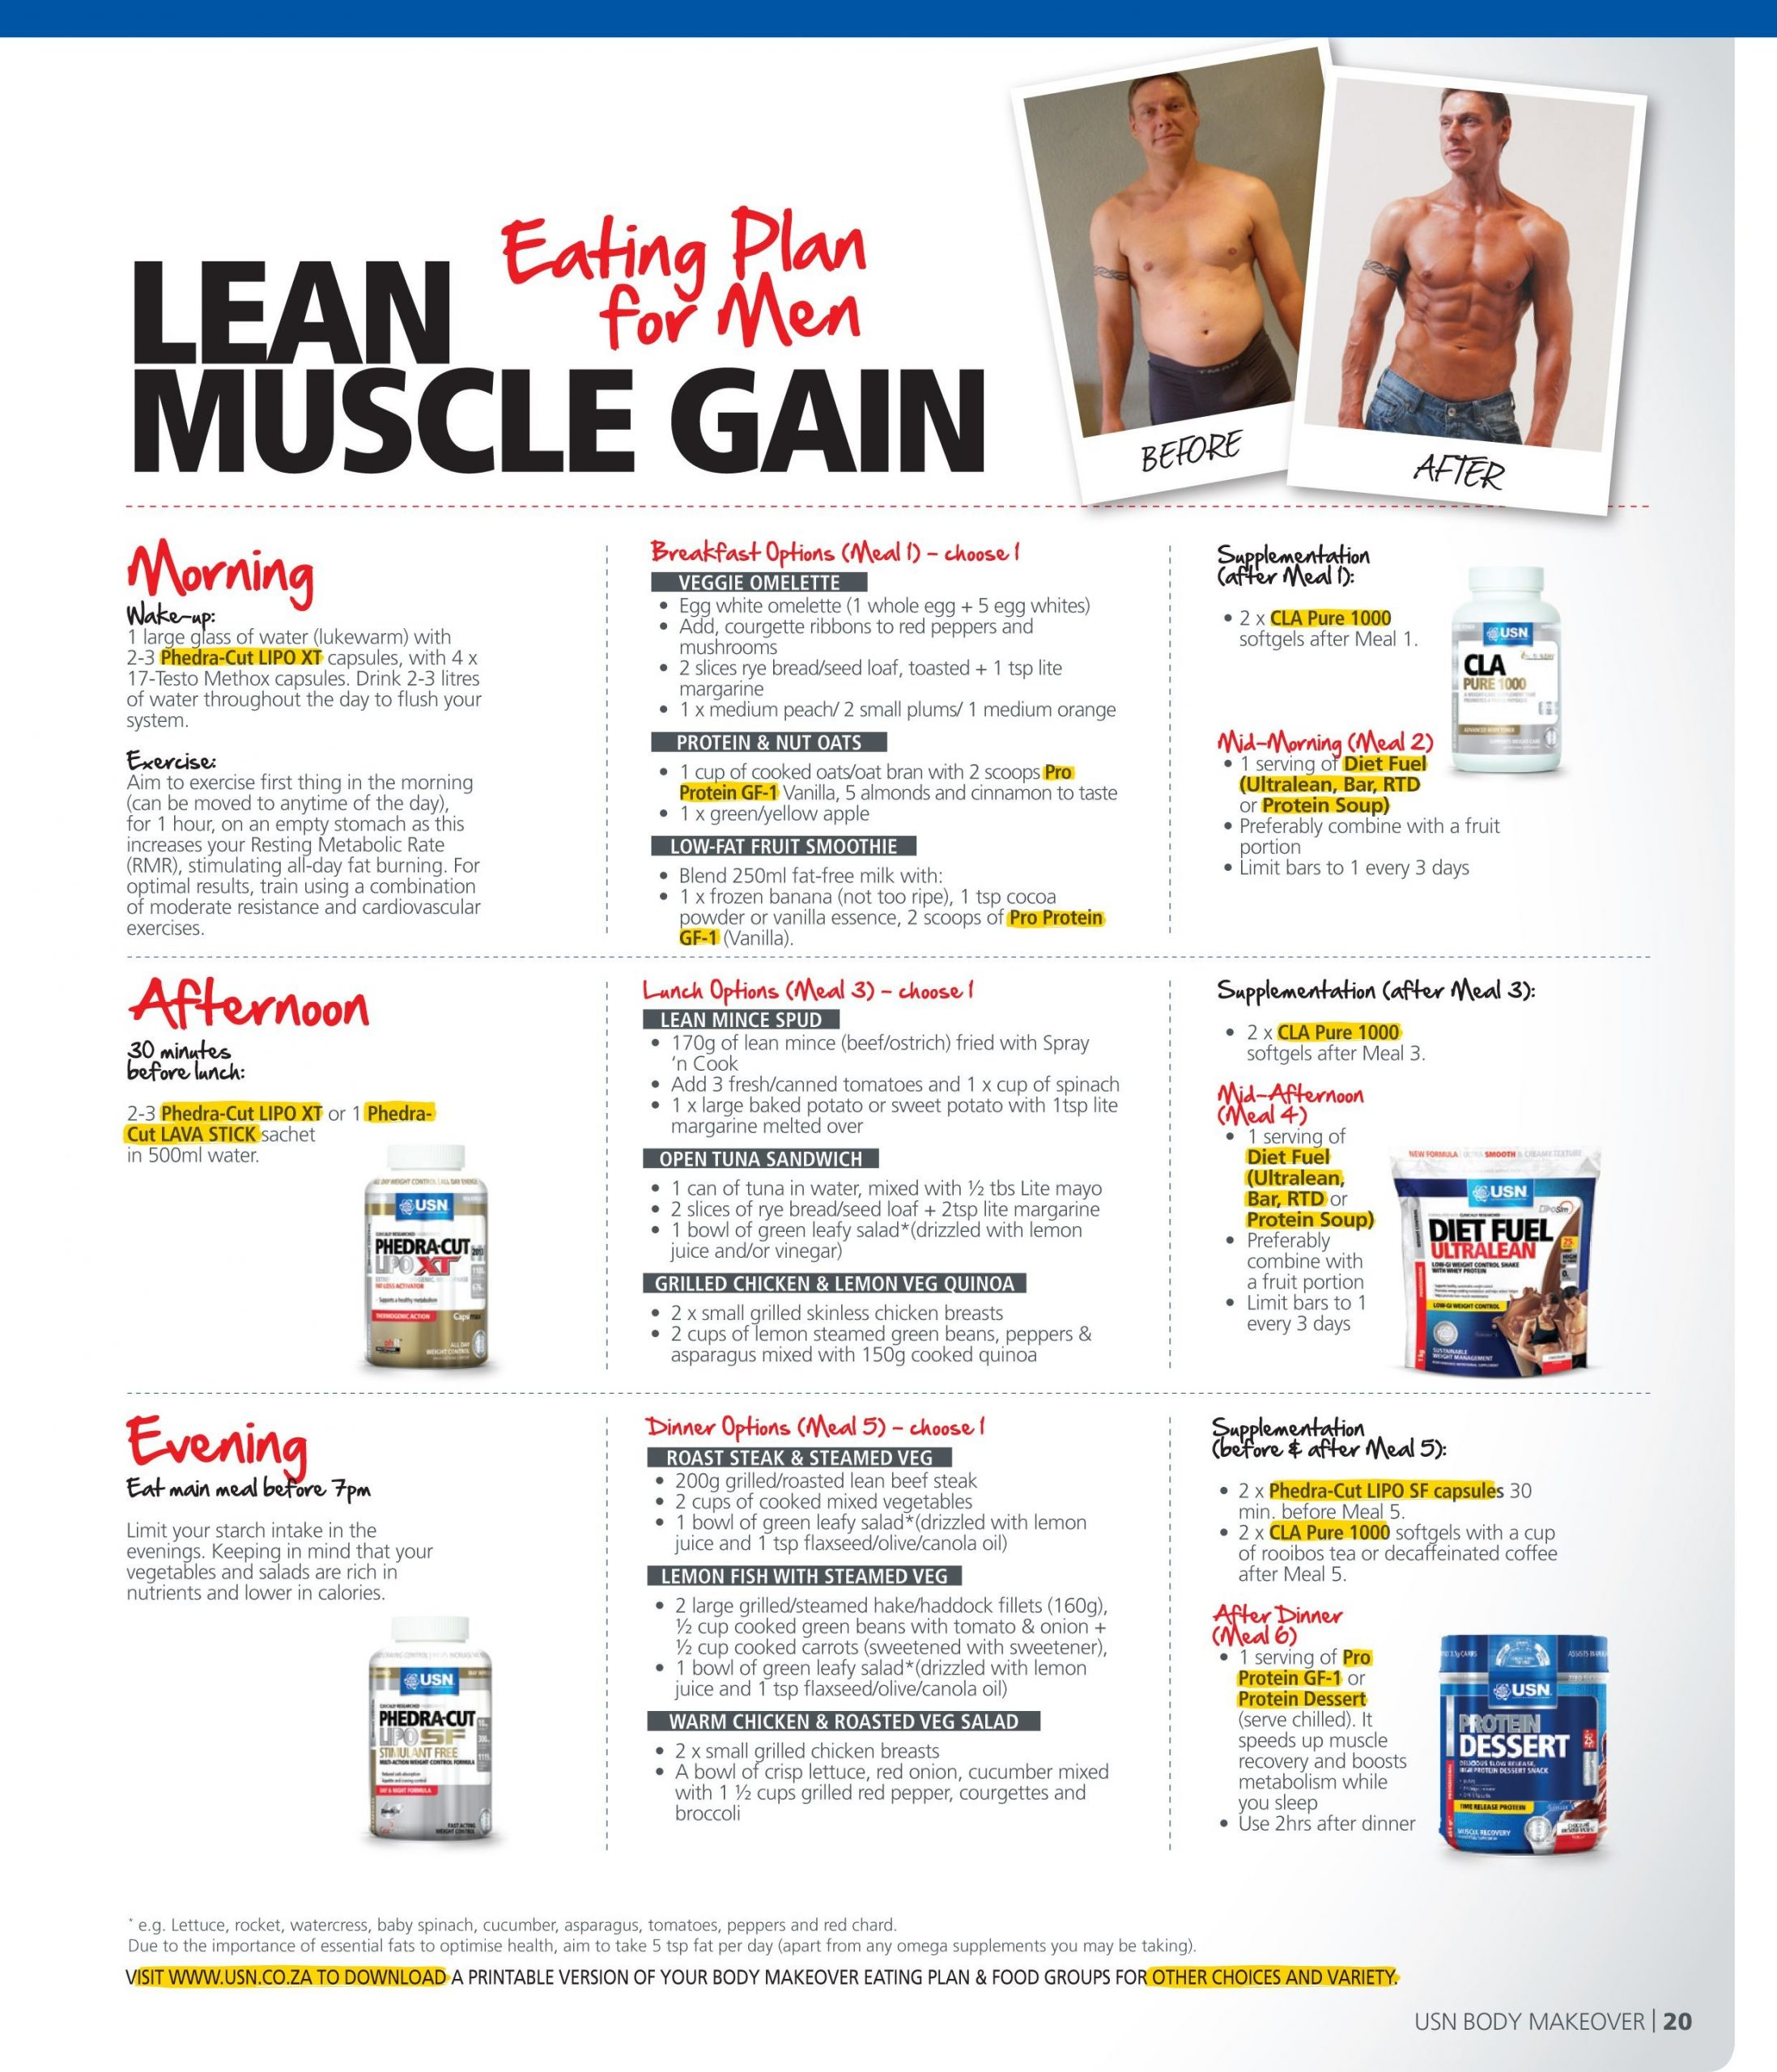 diet plan lean body  sample diet plan for lean muscle gain | salegoods ..